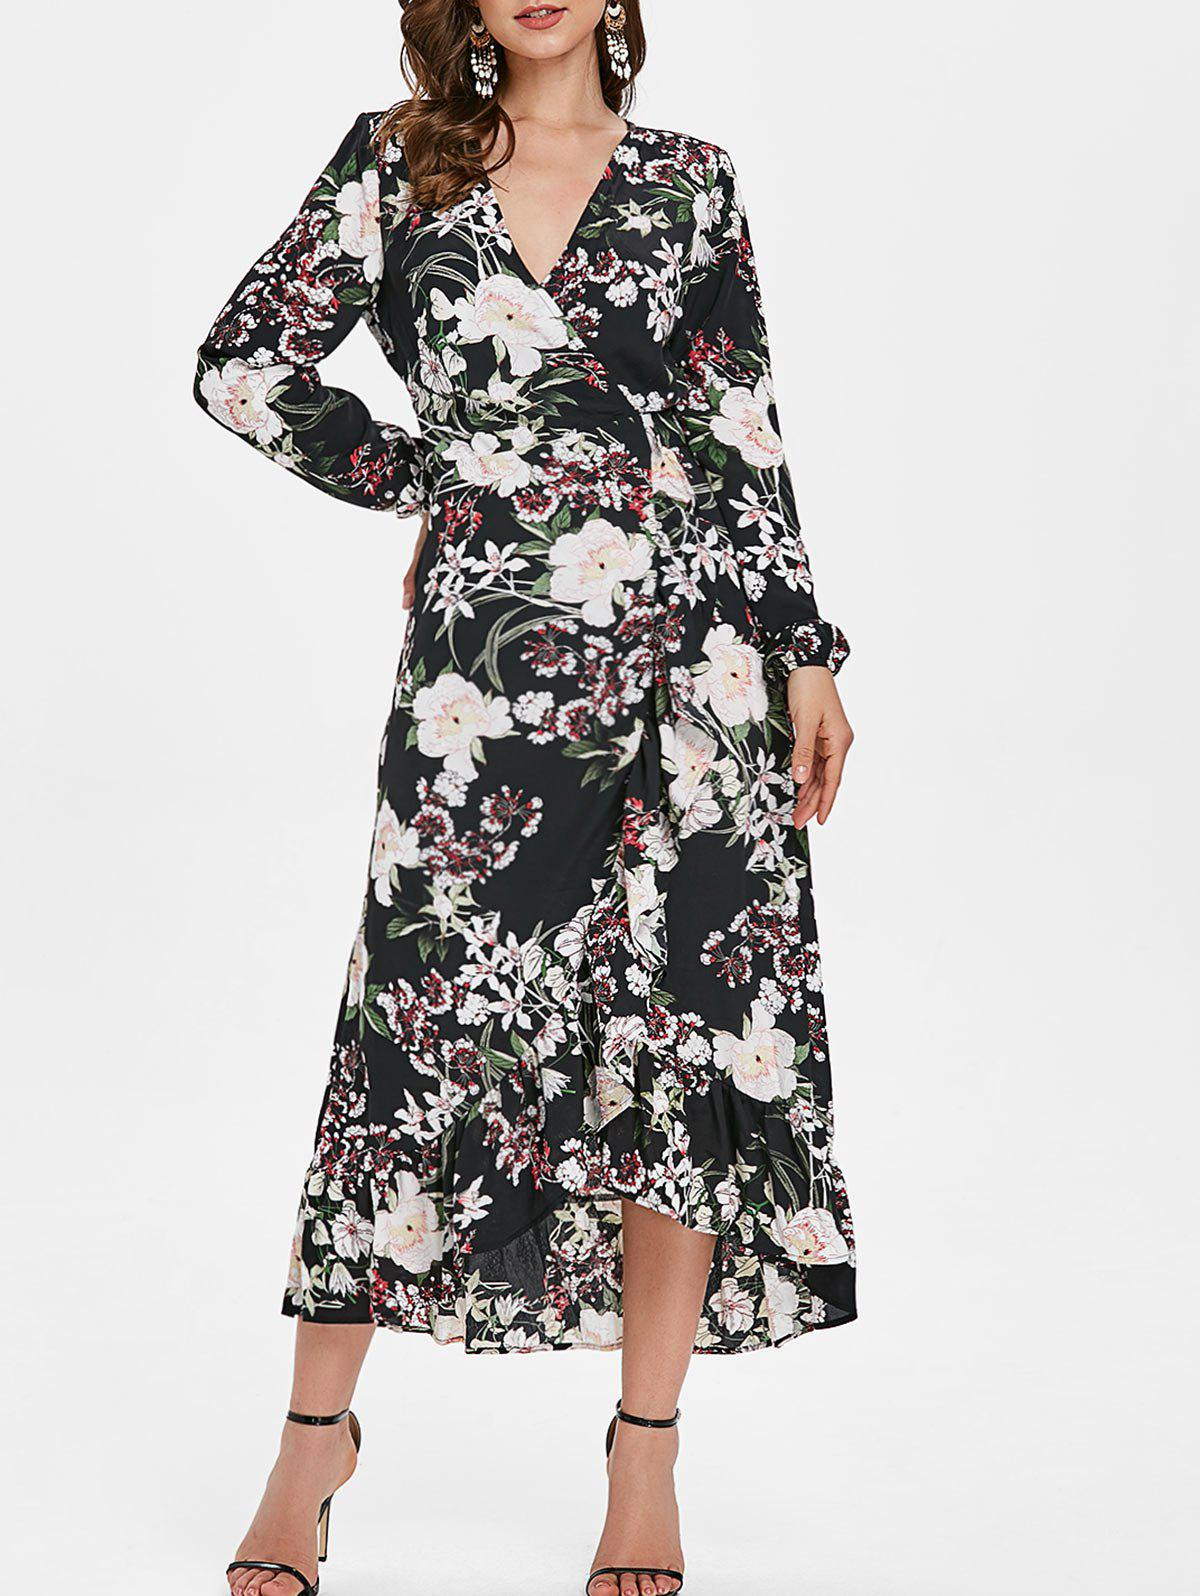 Shop Floral Print Ruffled Trim Maxi Dress